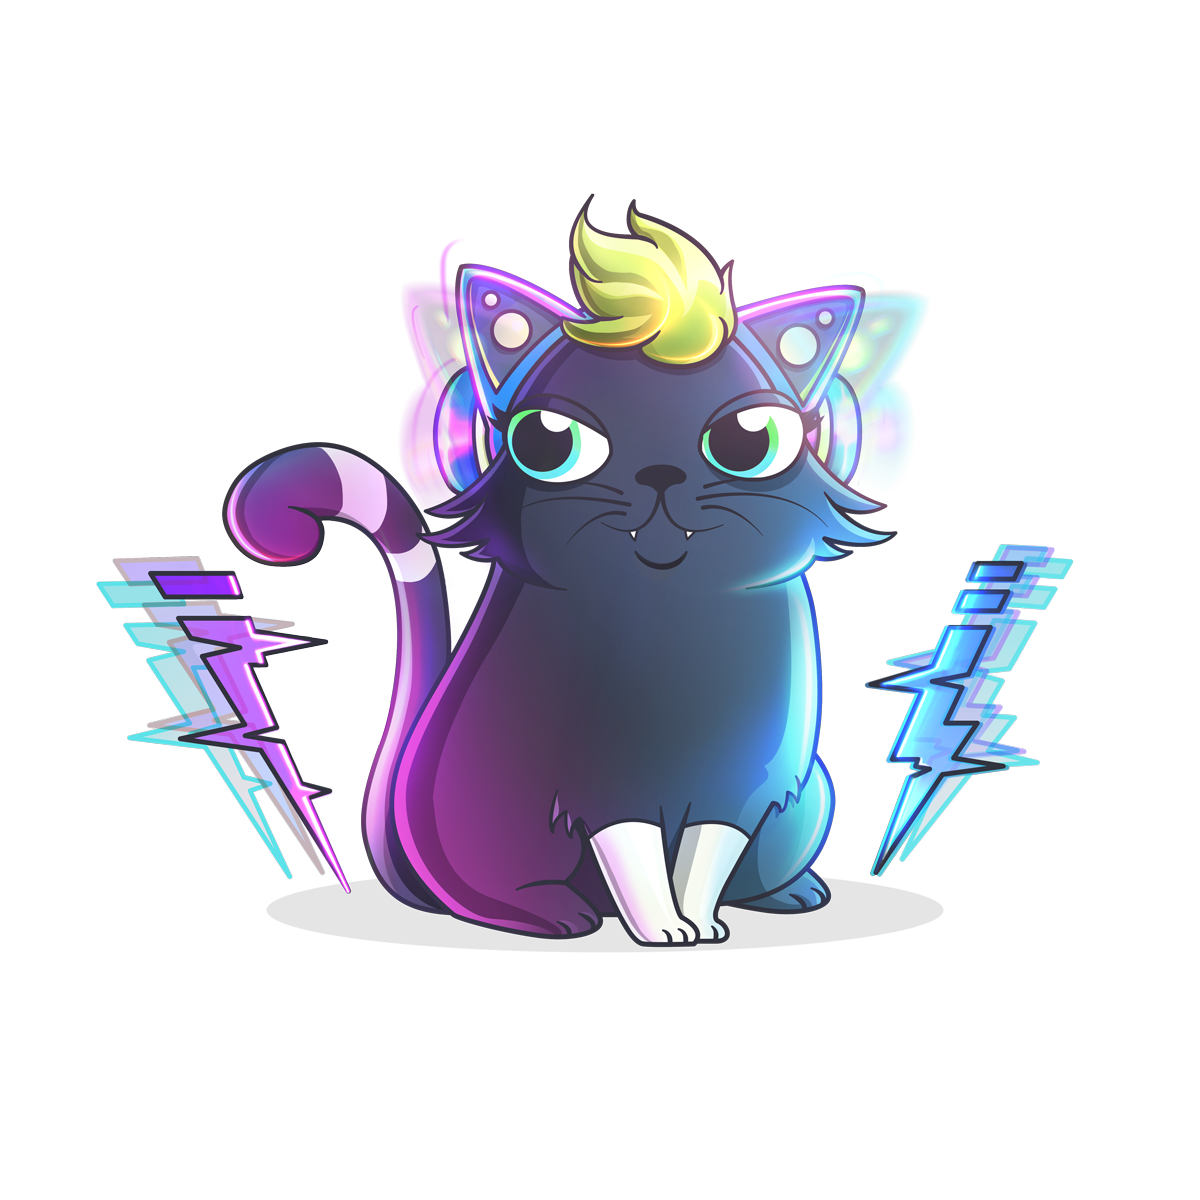 cryptokitty #1673214